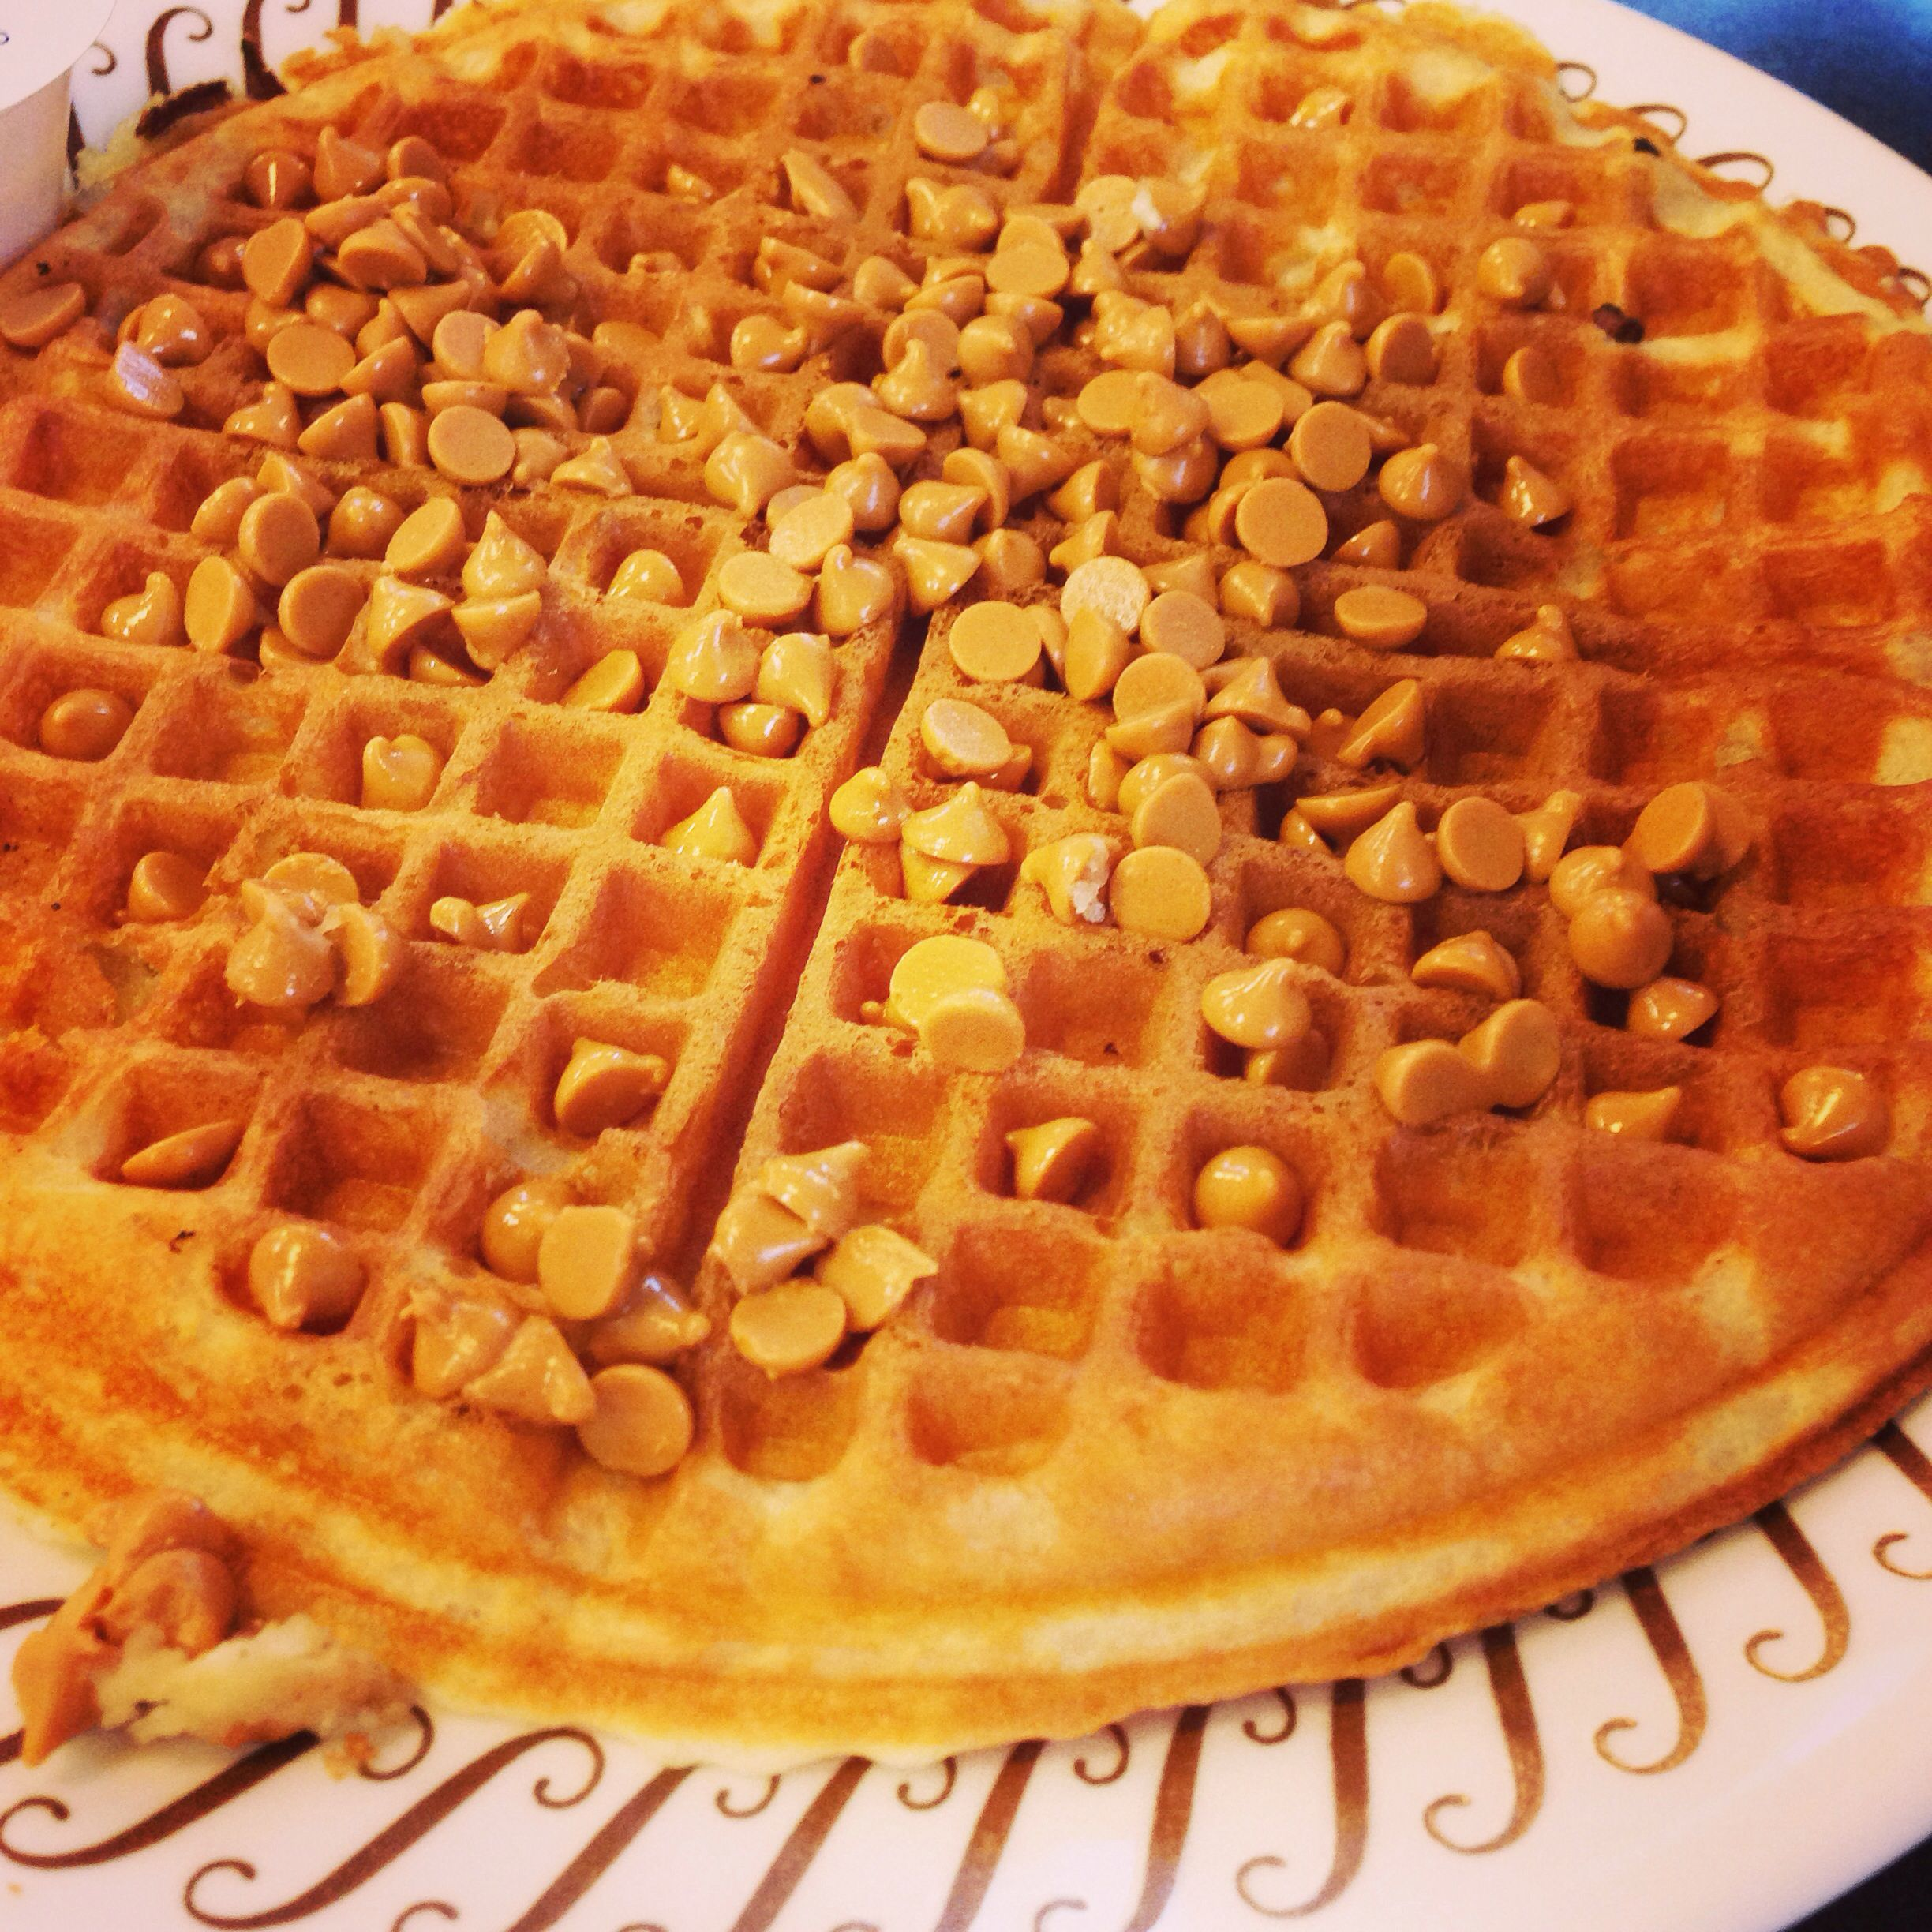 Peanut Butter Chip Waffle From Waffle House Comfort Food Southern Food Breakfast Recipes